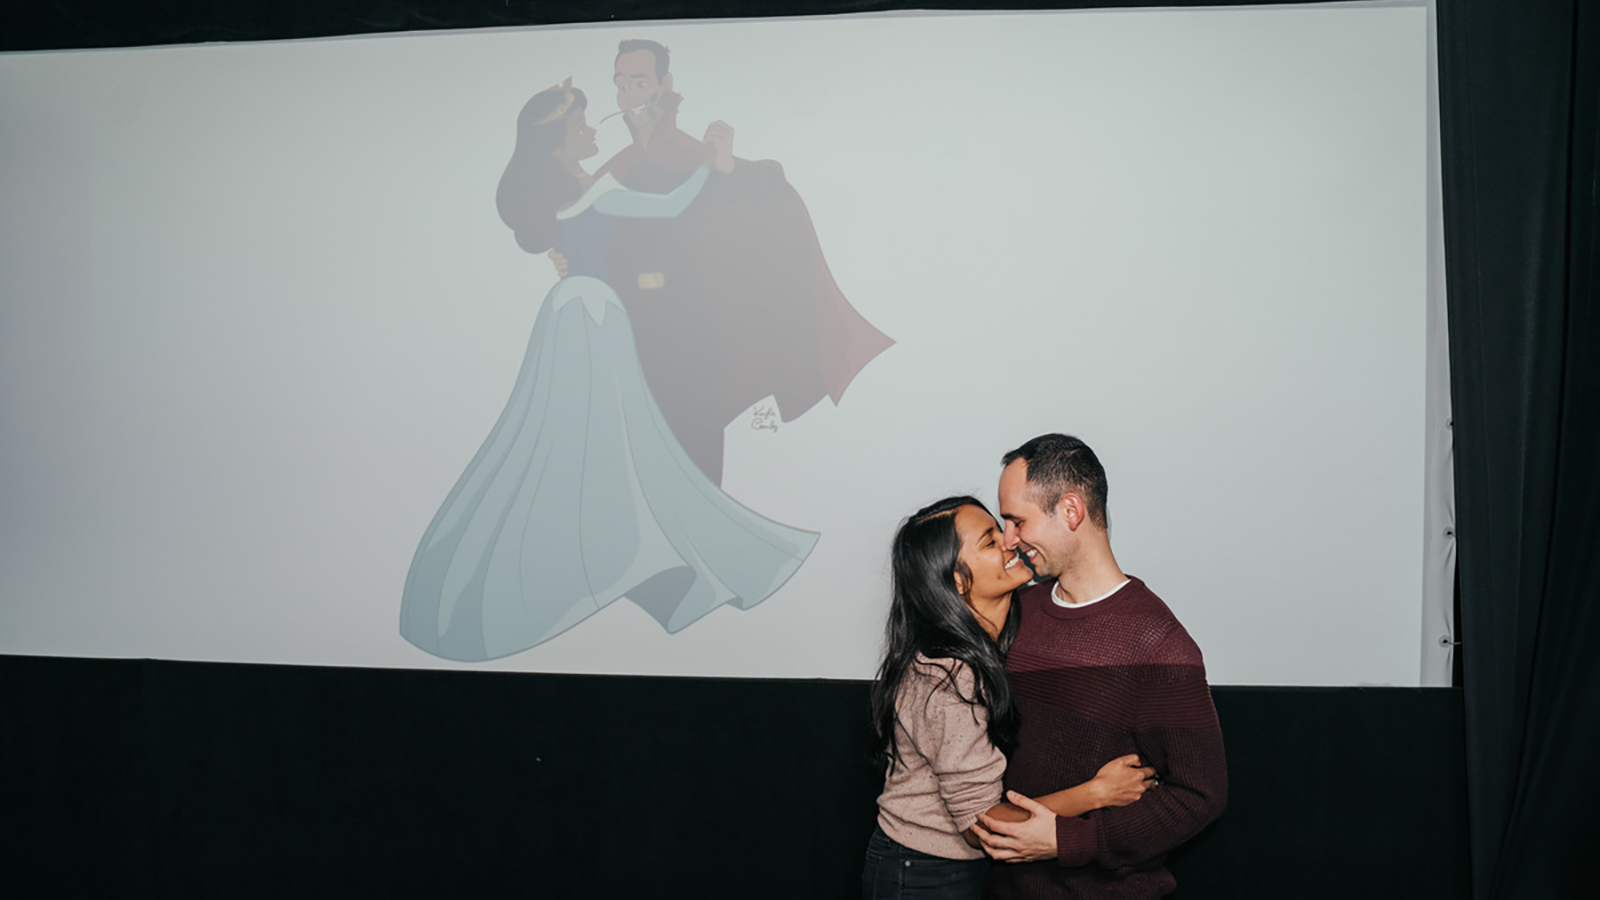 A man re-animated 'Sleeping Beauty' to create an unforgettable wedding proposal